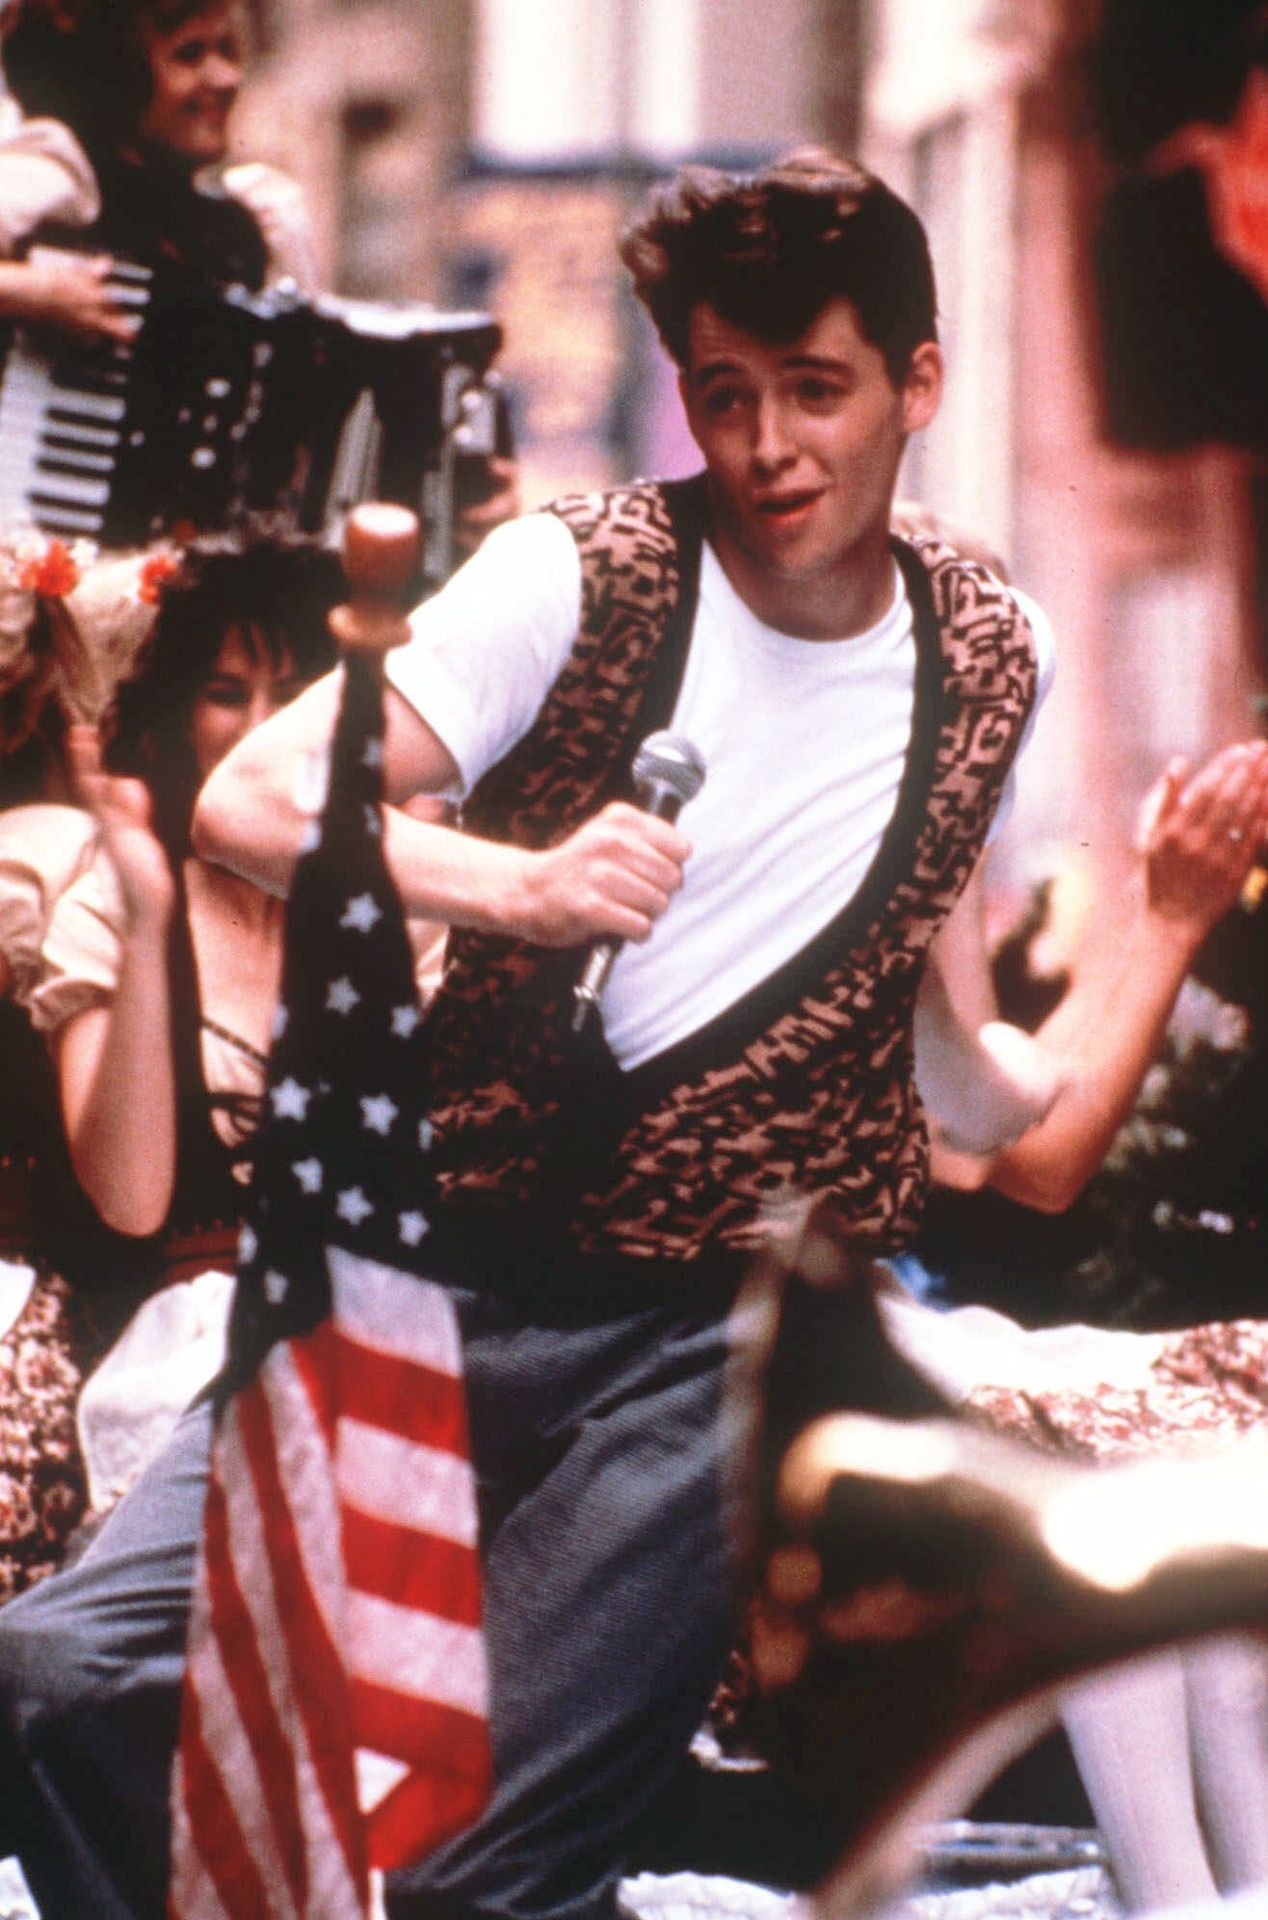 Ferris Bueller s Day Off - twist and shout!  66935e7f8